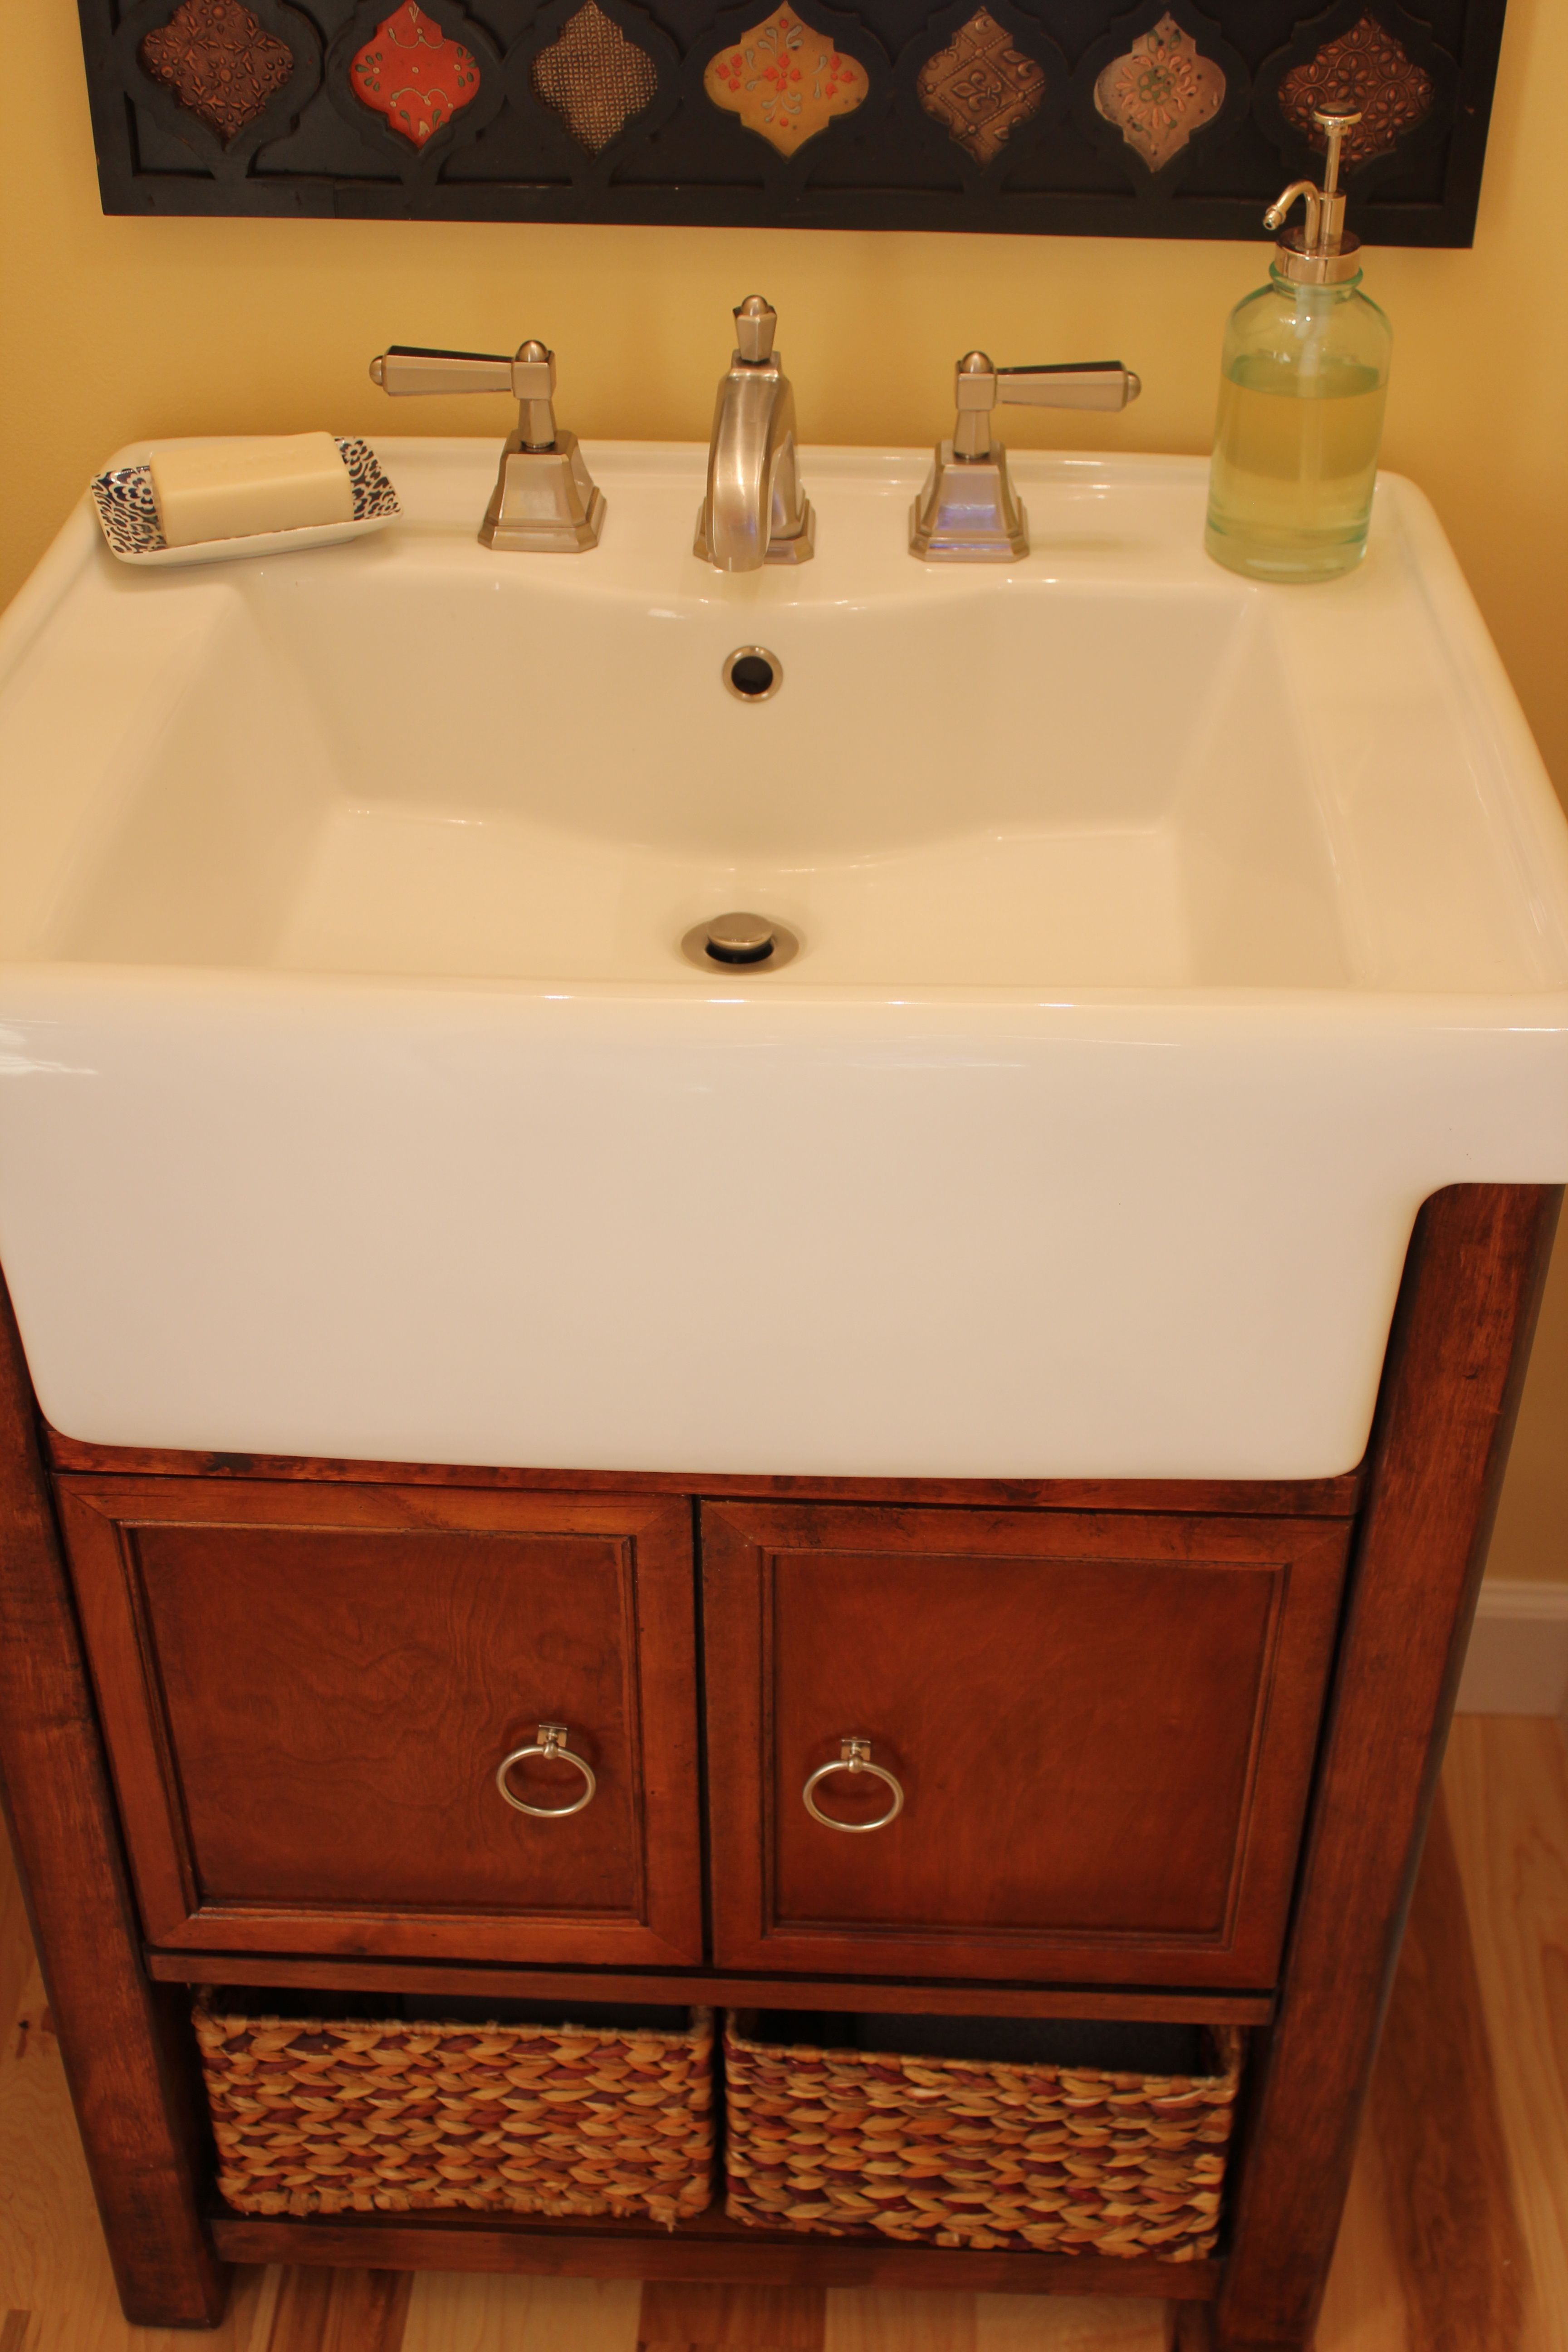 Farm Sinks At Lowes : Farm Sink from Lowes Tala Hair Studio Pinterest